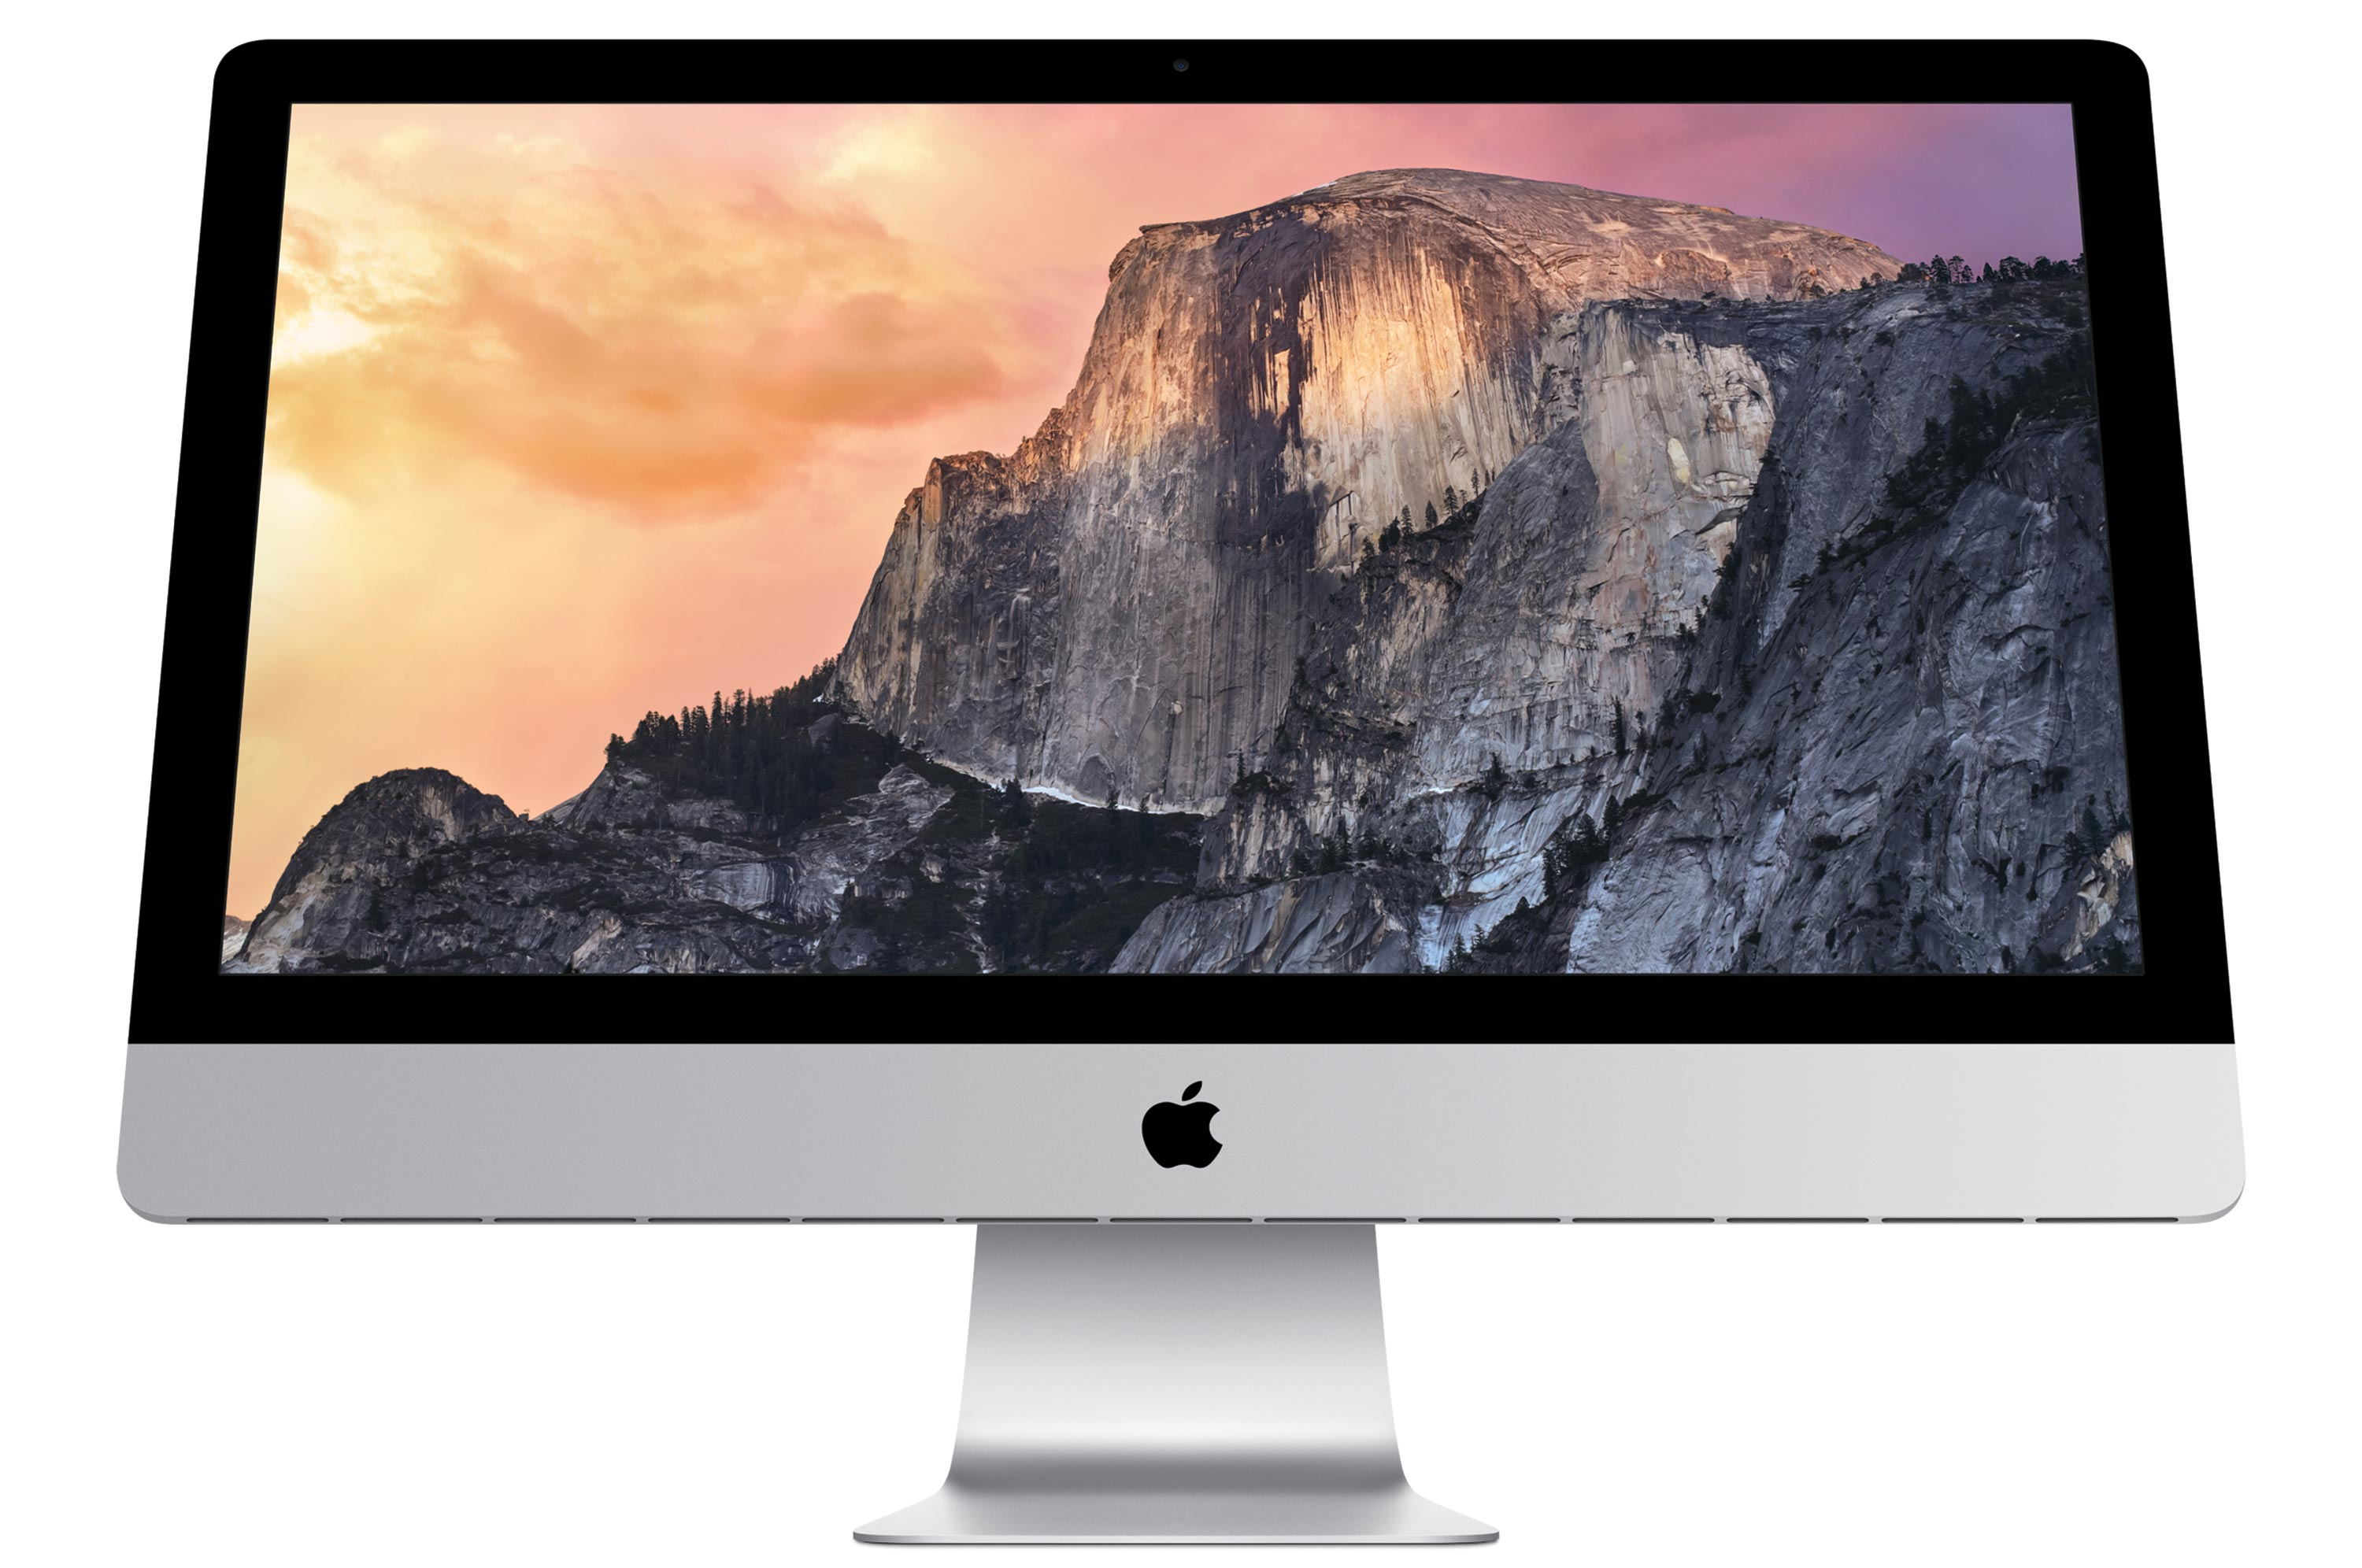 Apple creates an iMac screen so sharp there's almost nothing to watch on it